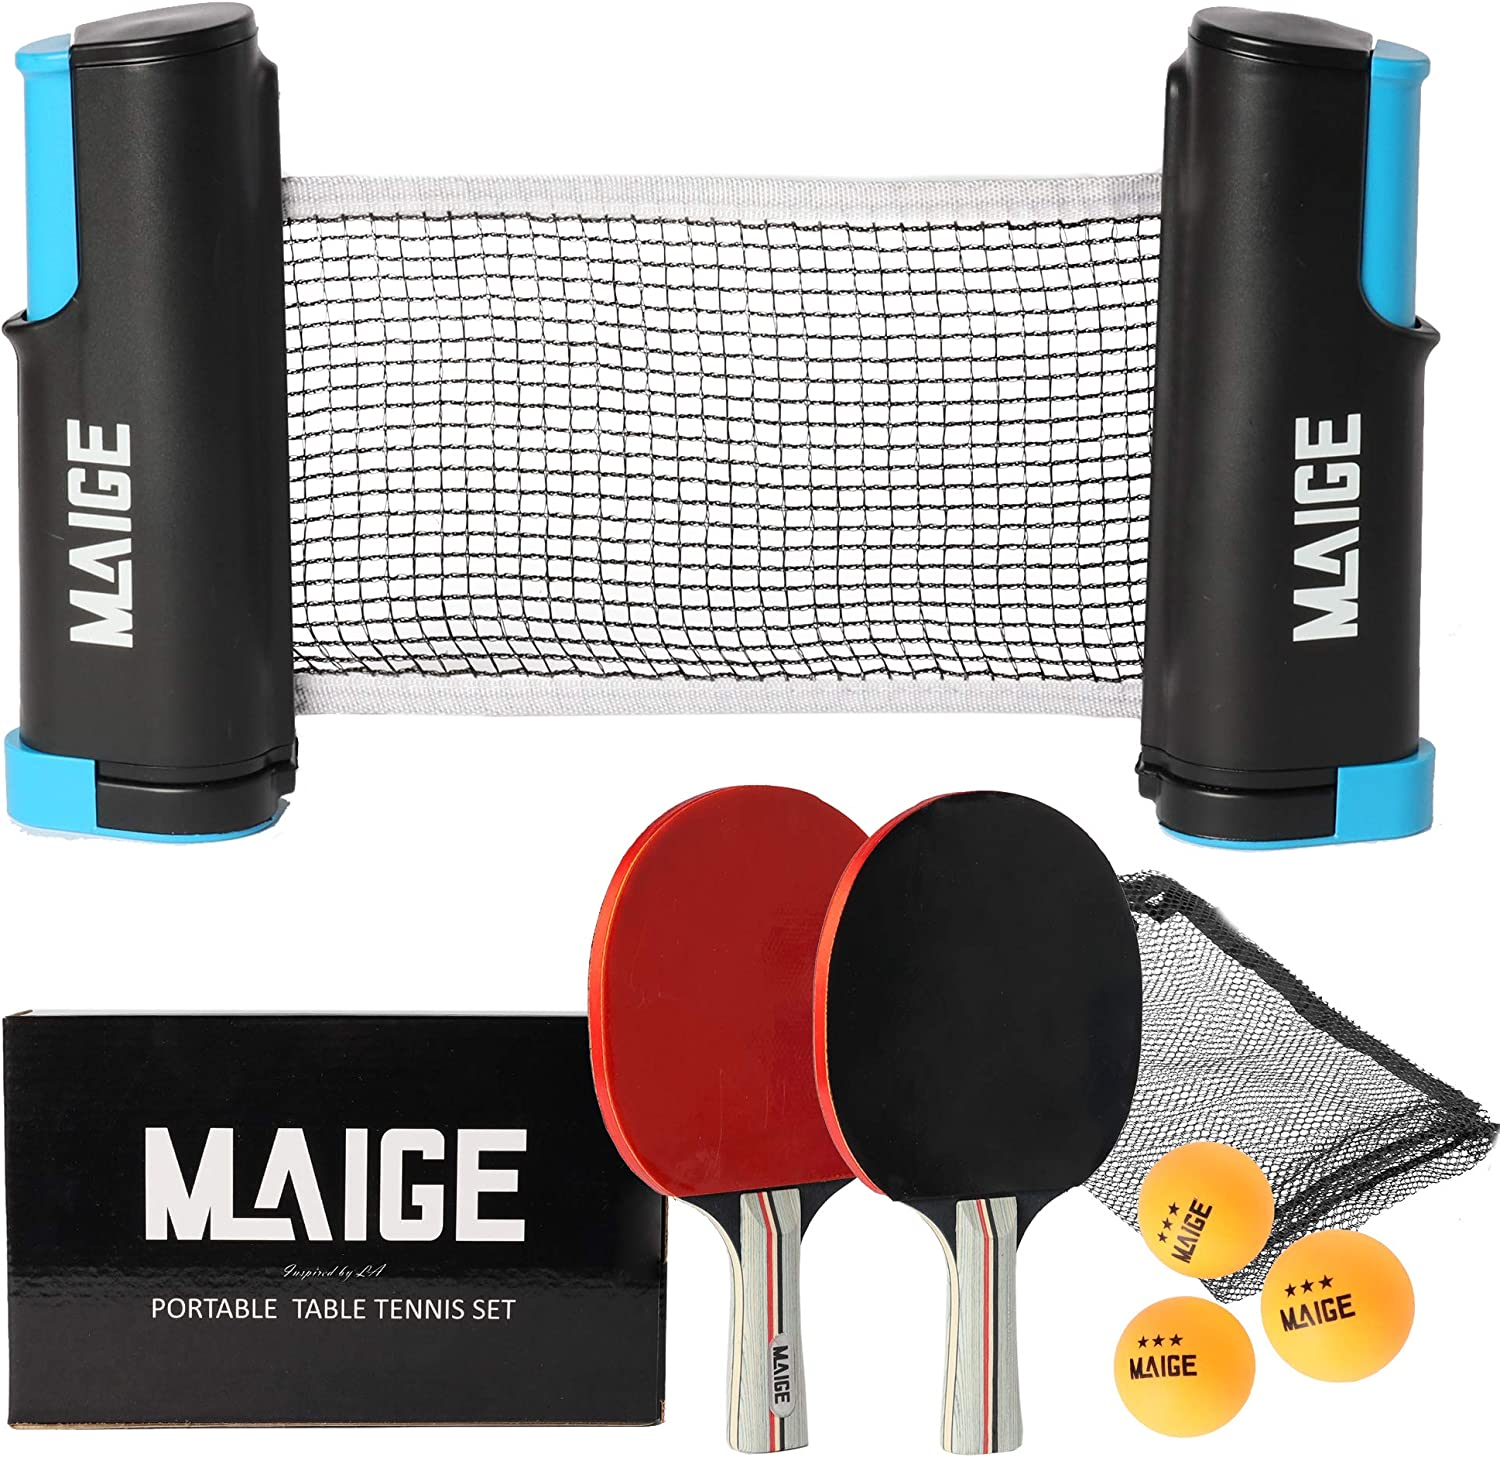 Maige Ping Pong Paddle Set | Table Tennis Paddle Set with Retractable Net | Portable Case and 3 Star Balls| Perfect for Home Indoor or Outdoor Play | Attach to Any Tabletop Surface